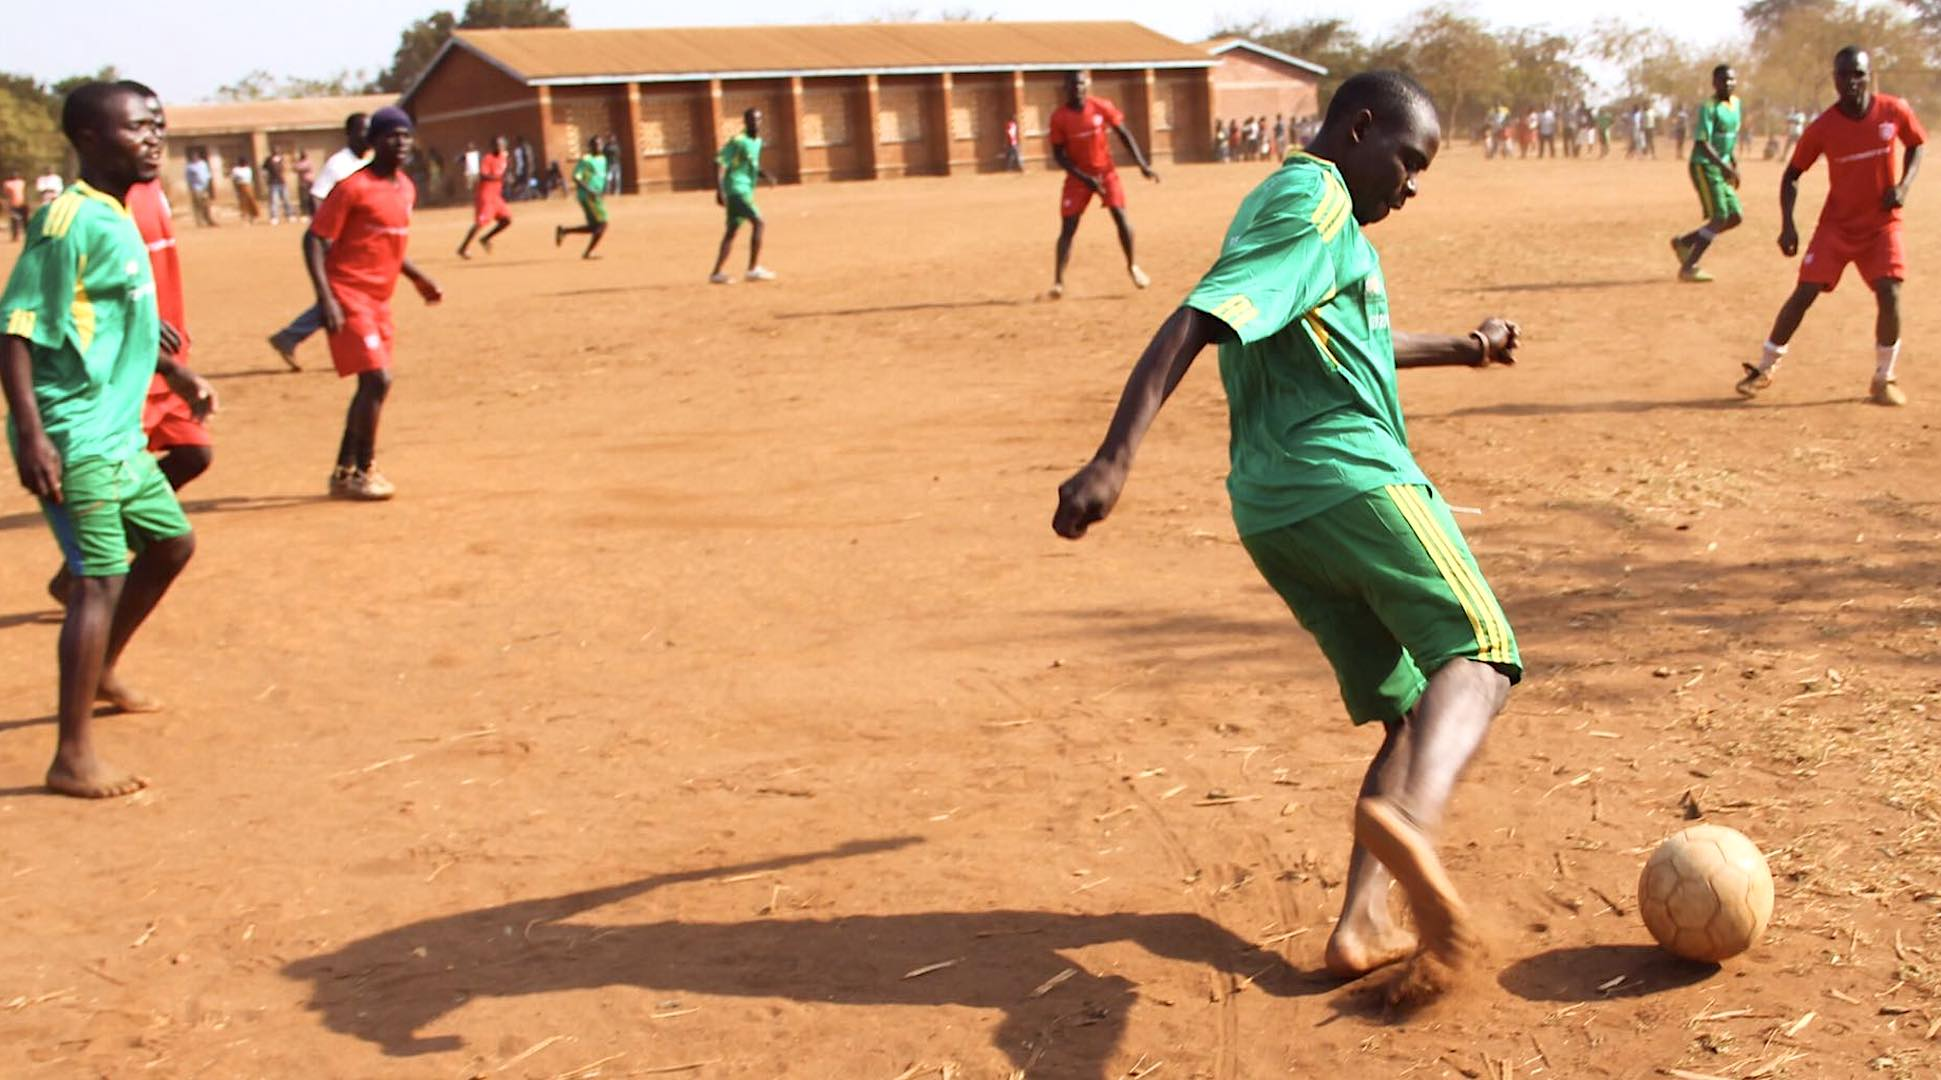 The Rising Stars boys football team play against other youth groups, as well as teams made up of village chiefs.